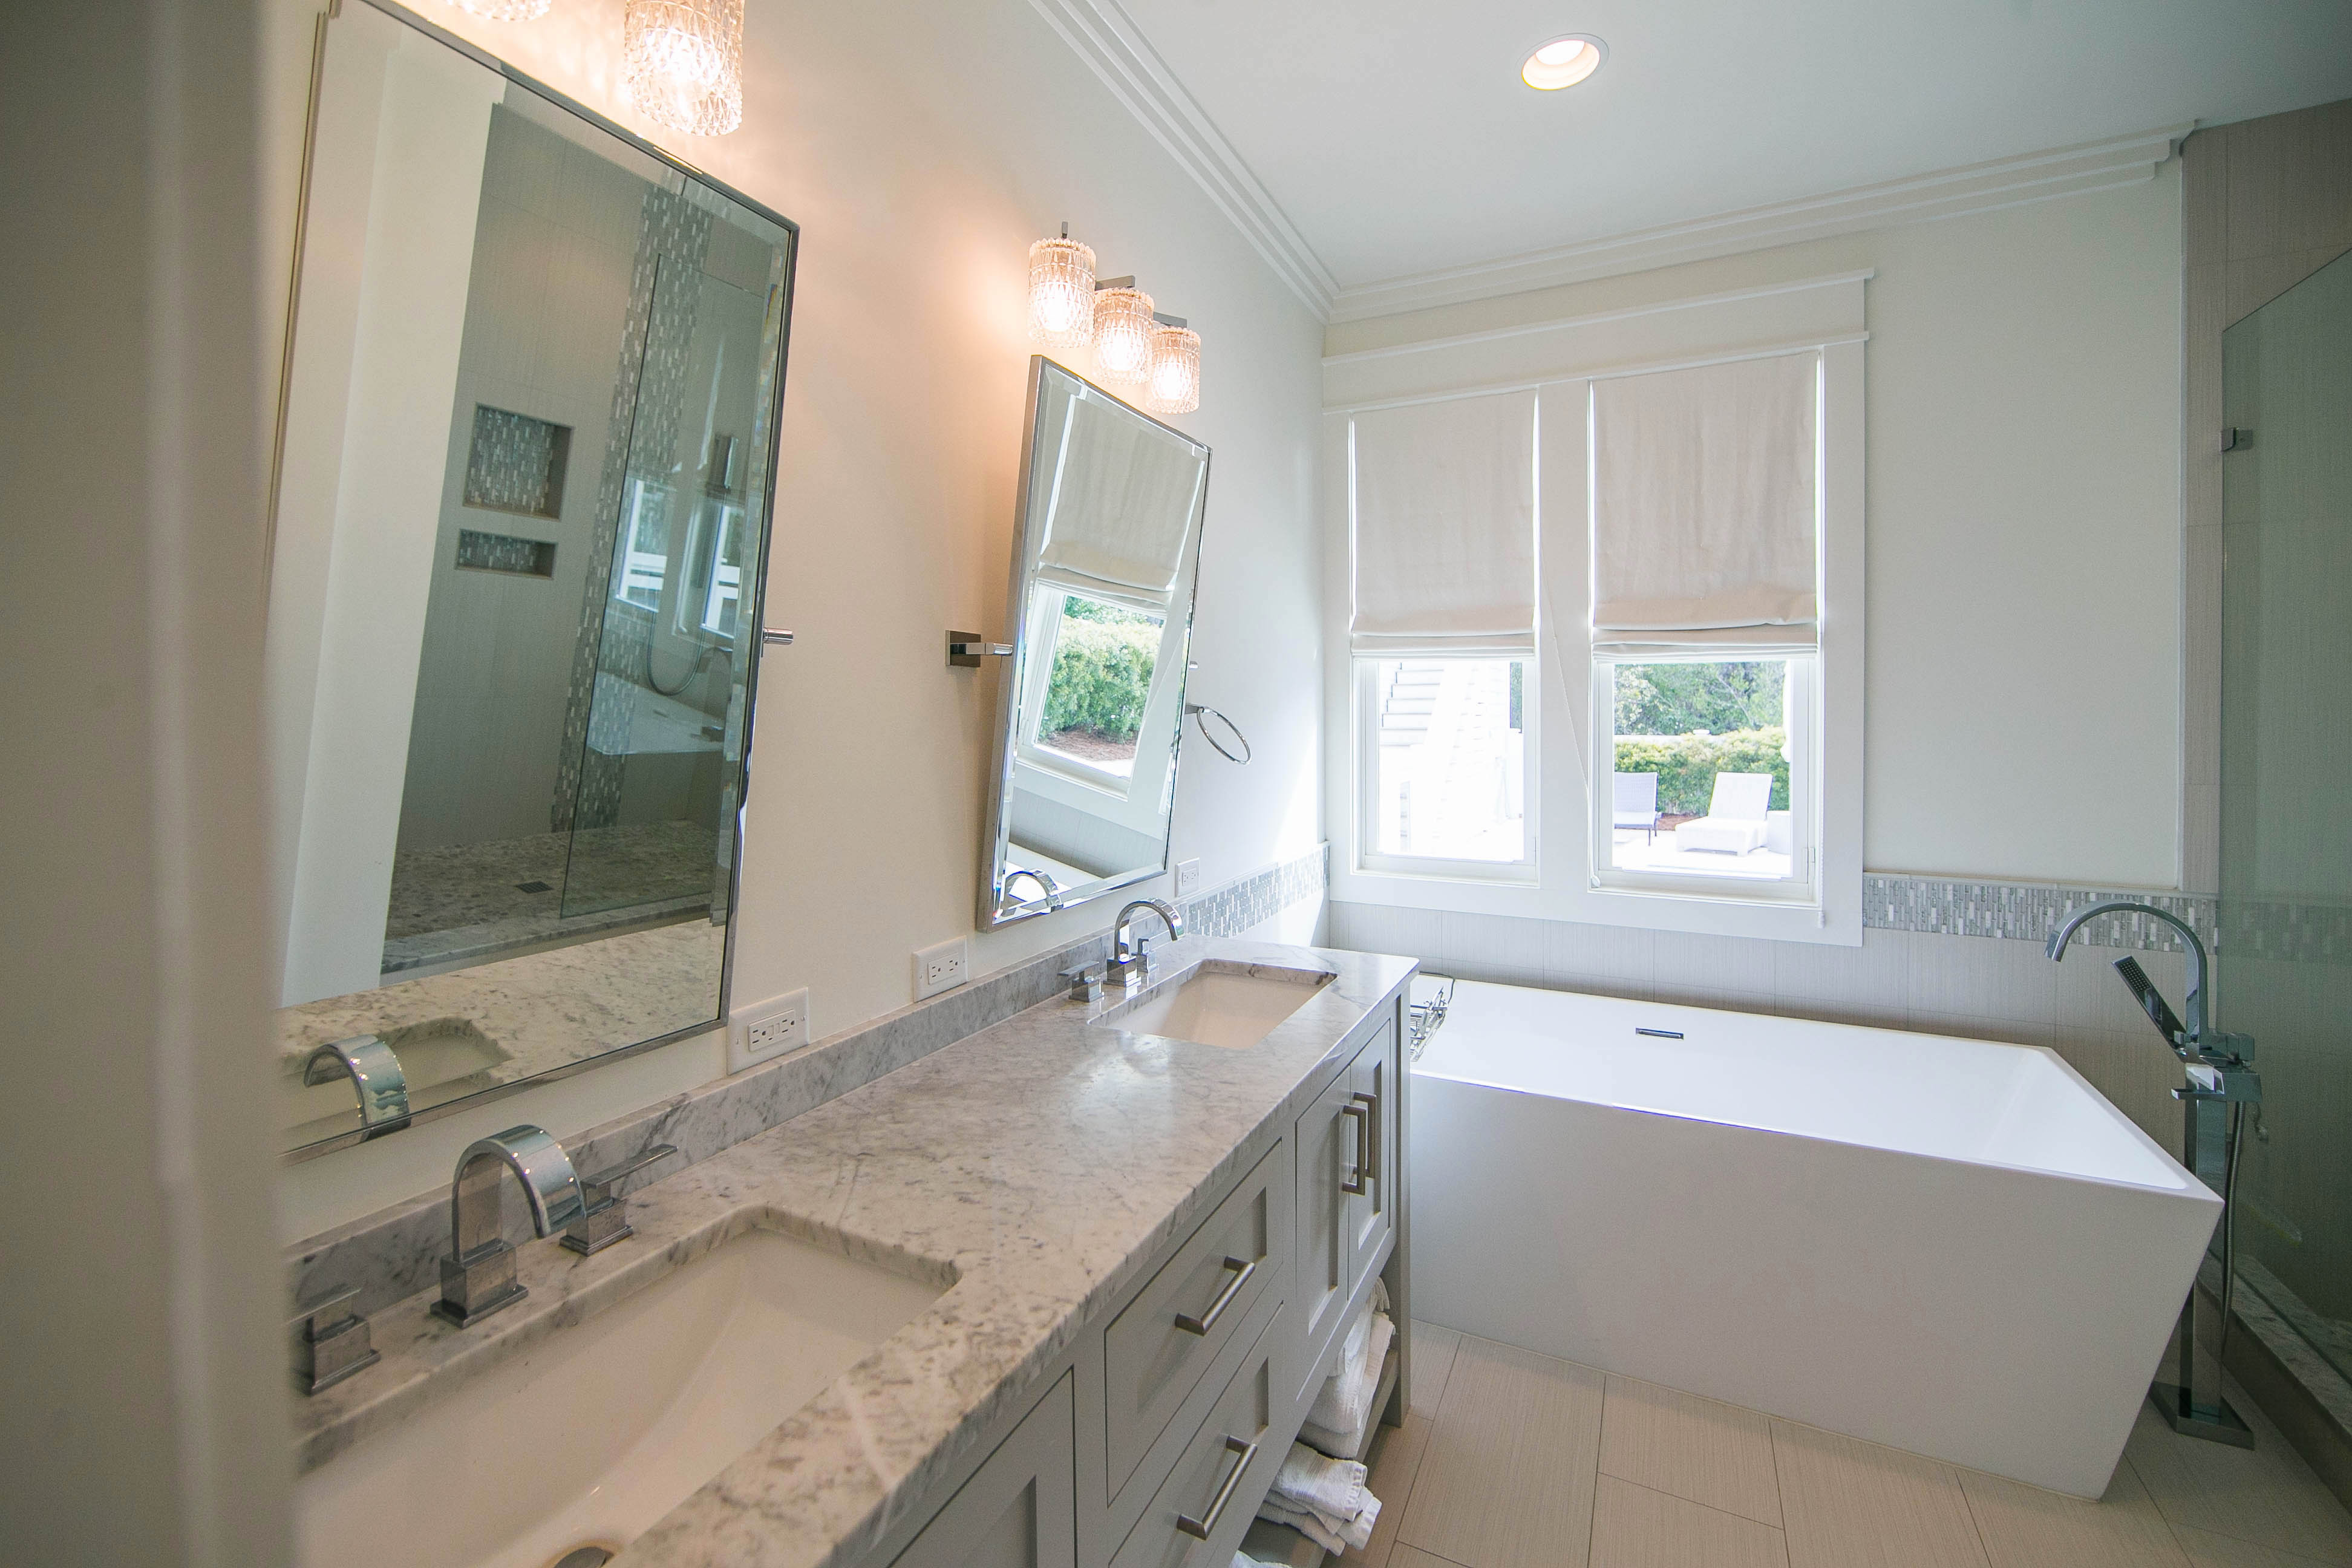 The master bathroom has a gorgeous double vanity and large soaking tub.